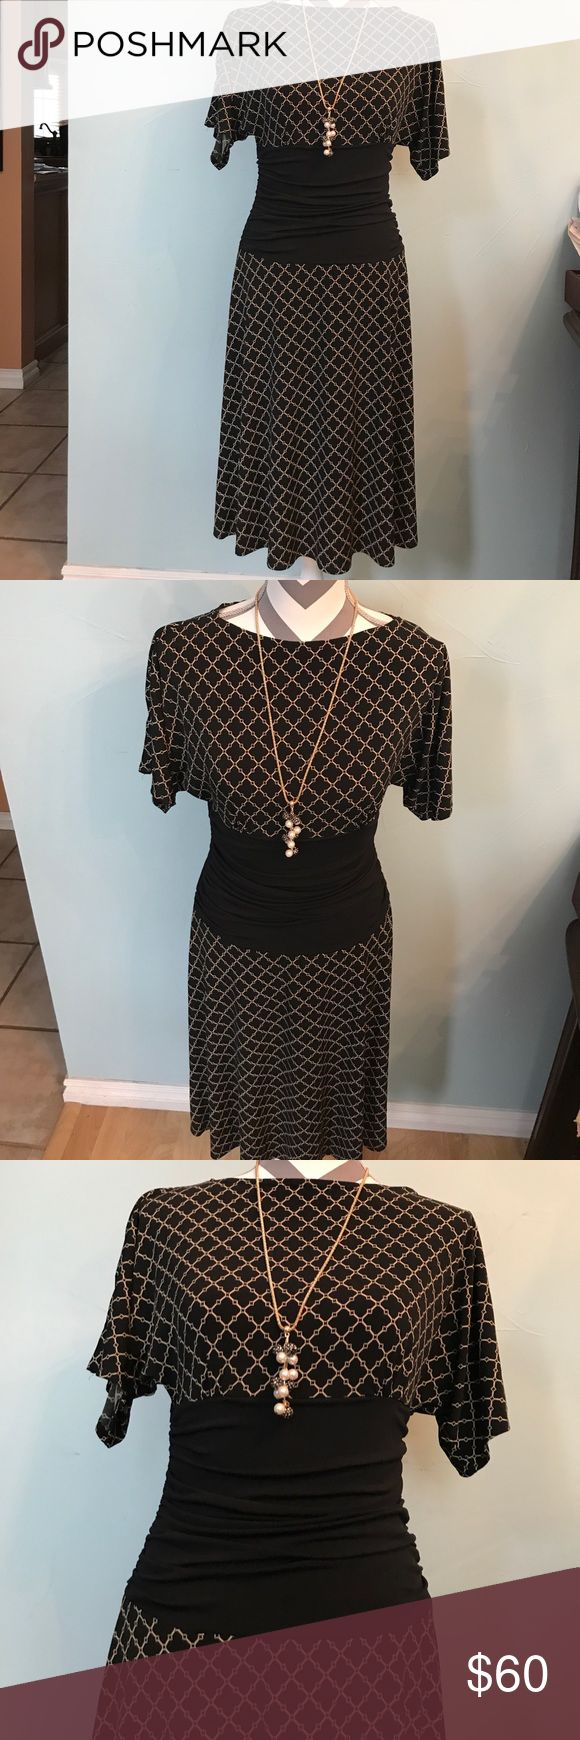 Sexy Donna Morgan with clover print midi dress Sexy Donna Morgan with clover print midi dress! Perfect condition!!!! NO TRADE! Kindly check more Bags, Shoes,tops,skirts,dress etc. Waiting for you! Donna Morgan Dresses Midi